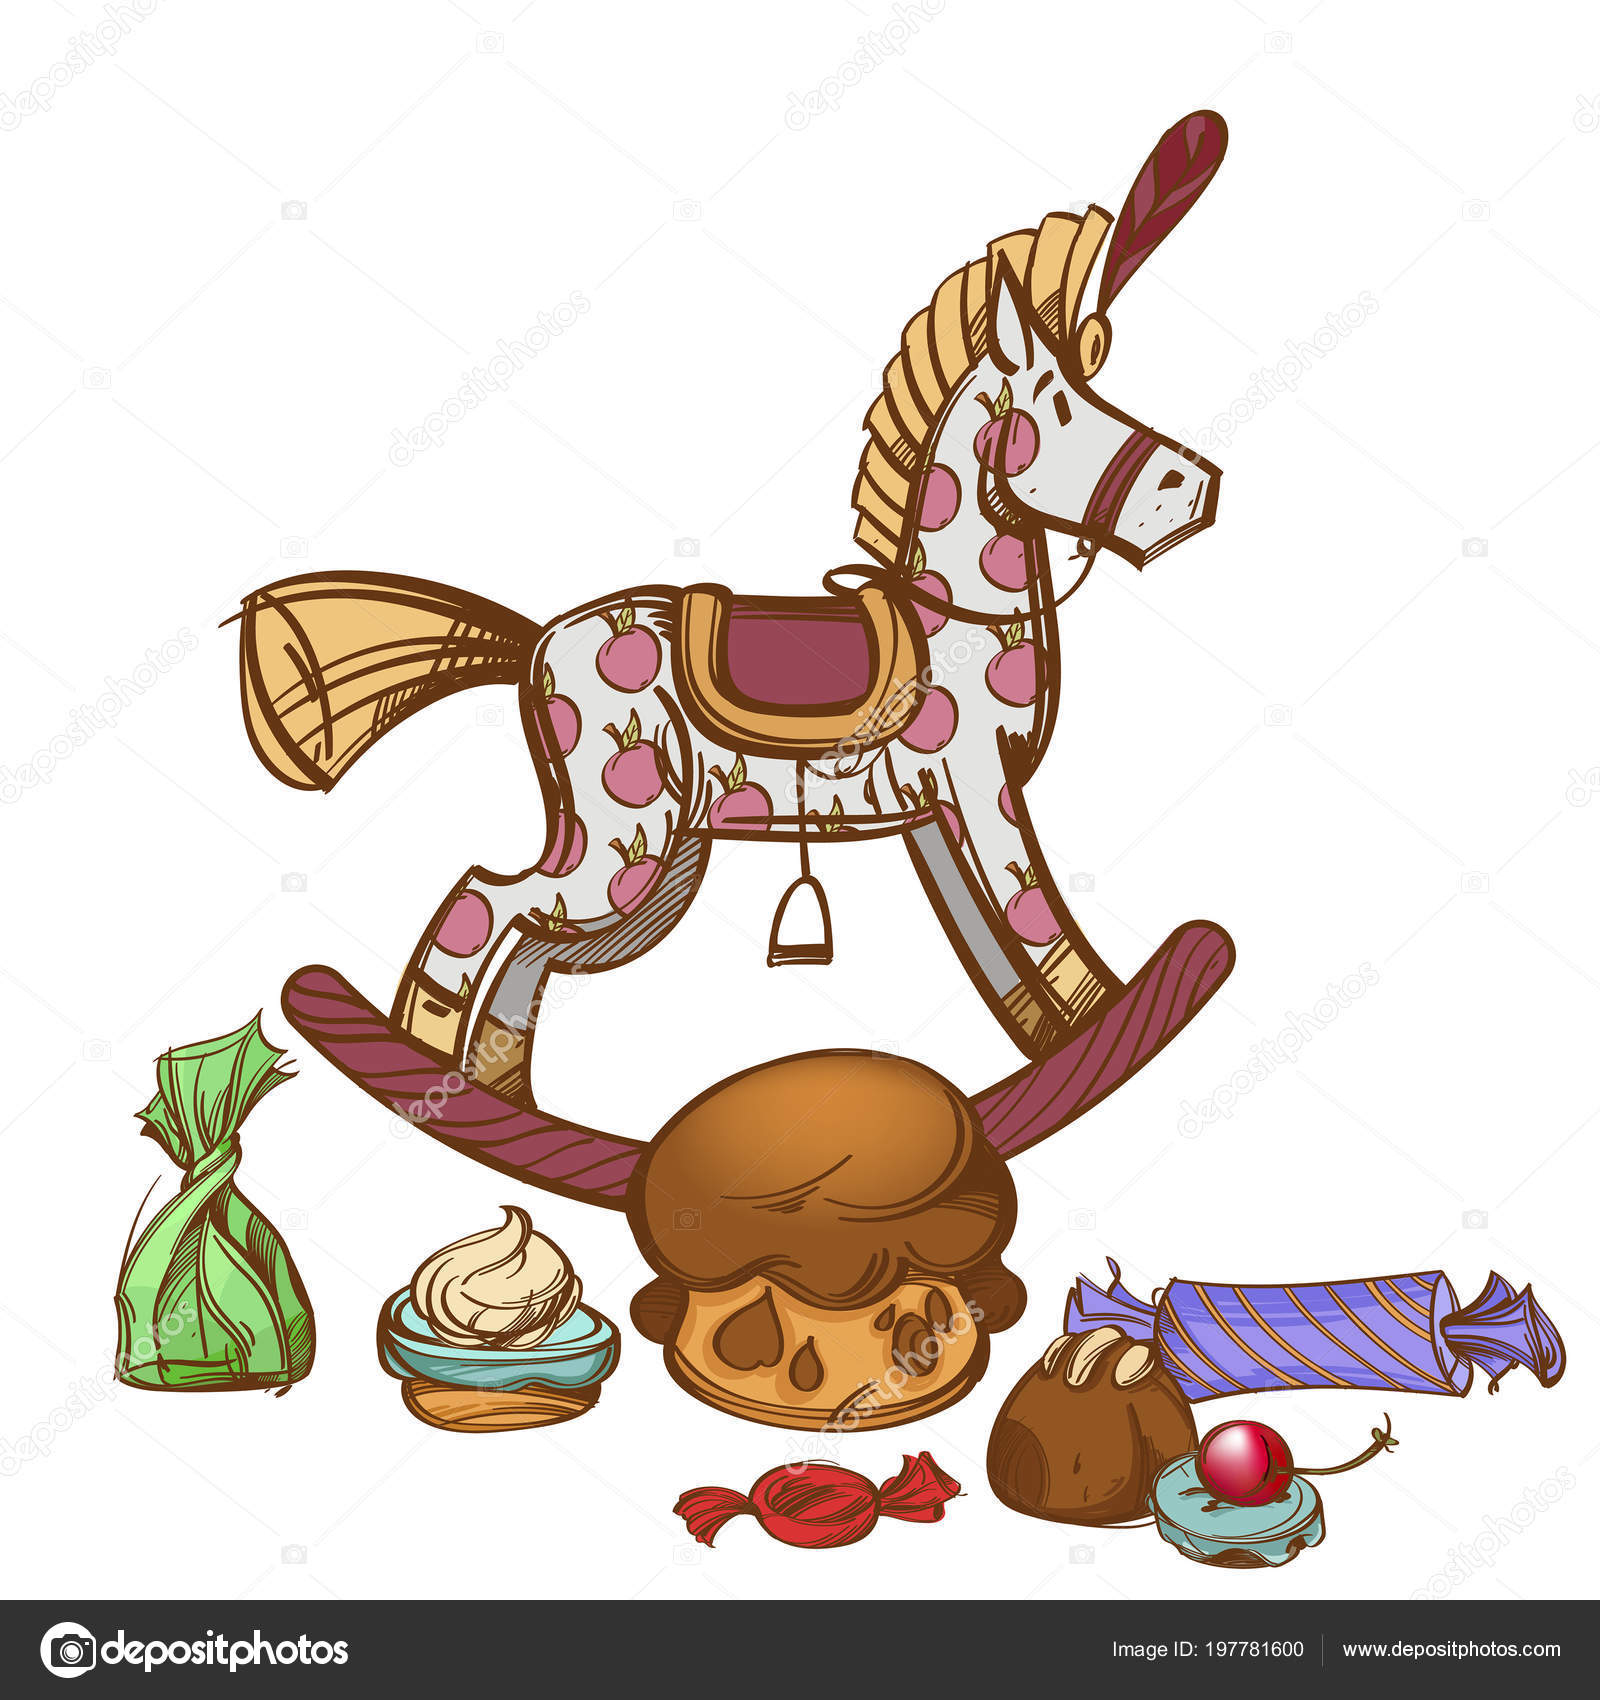 Vintage Wooden Rocking Horse Sweets Decorative Element Festive Design Hand Stock Vector C Filkusto 197781600